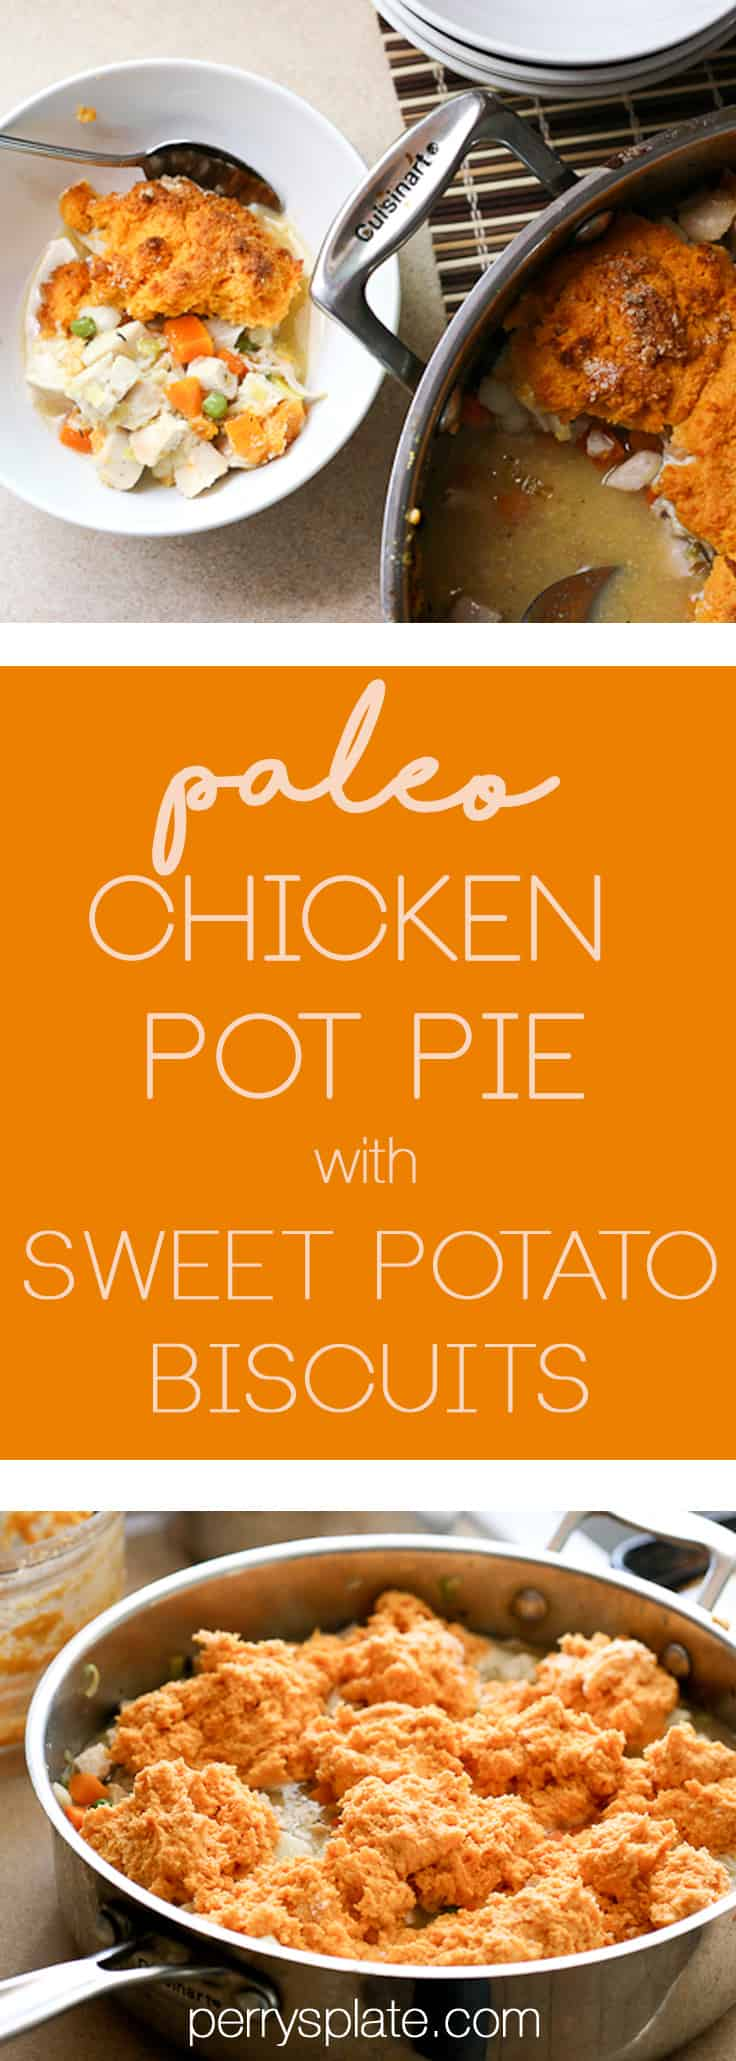 Chicken Pot Pie with Sweet Potato Biscuits | paleo recipes | dairy-free recipes | gluten-free recipes | sweet potato recipes | perrysplate.com